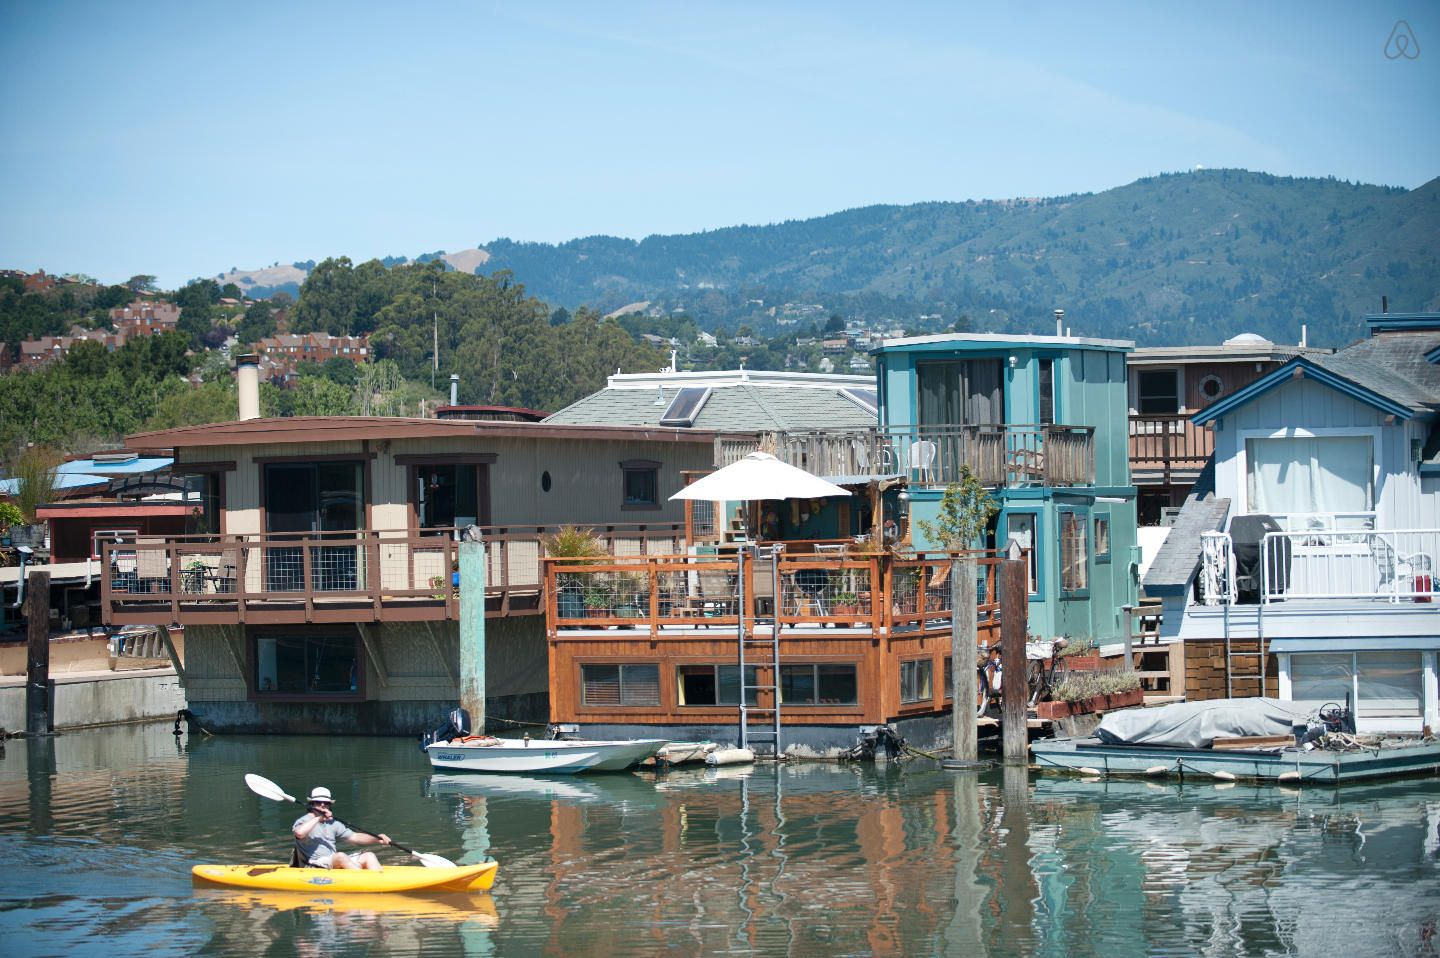 Check Out This Awesome Listing On Airbnb San Francisco Sausalito